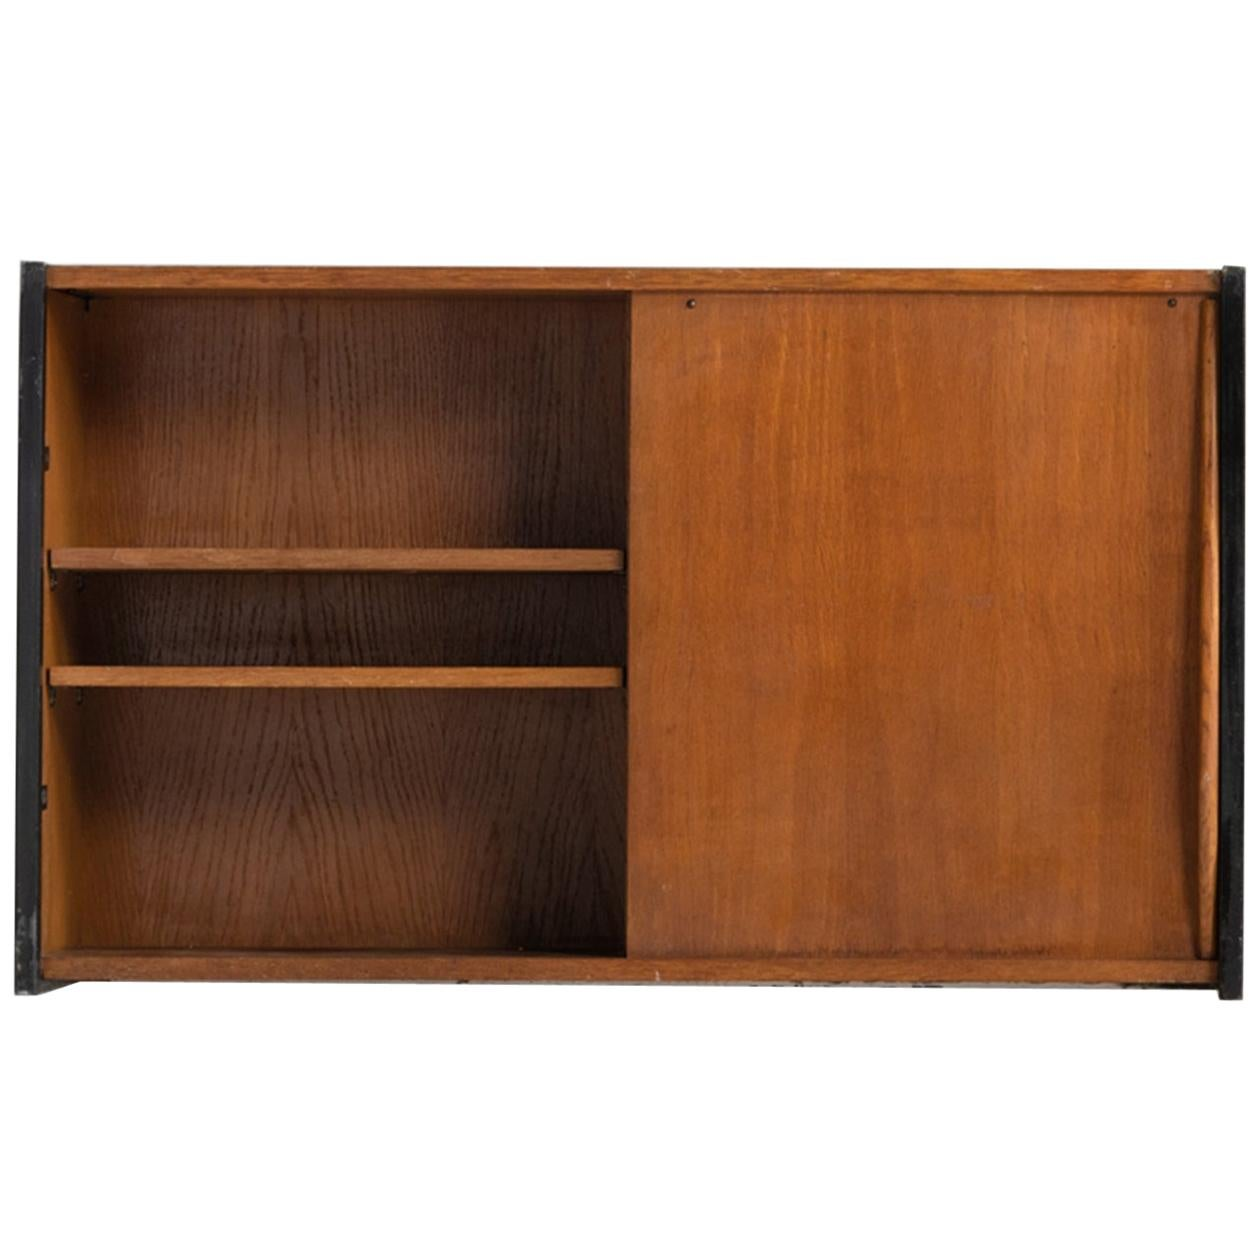 Wall-Mounted Cabinet, France, circa 1950